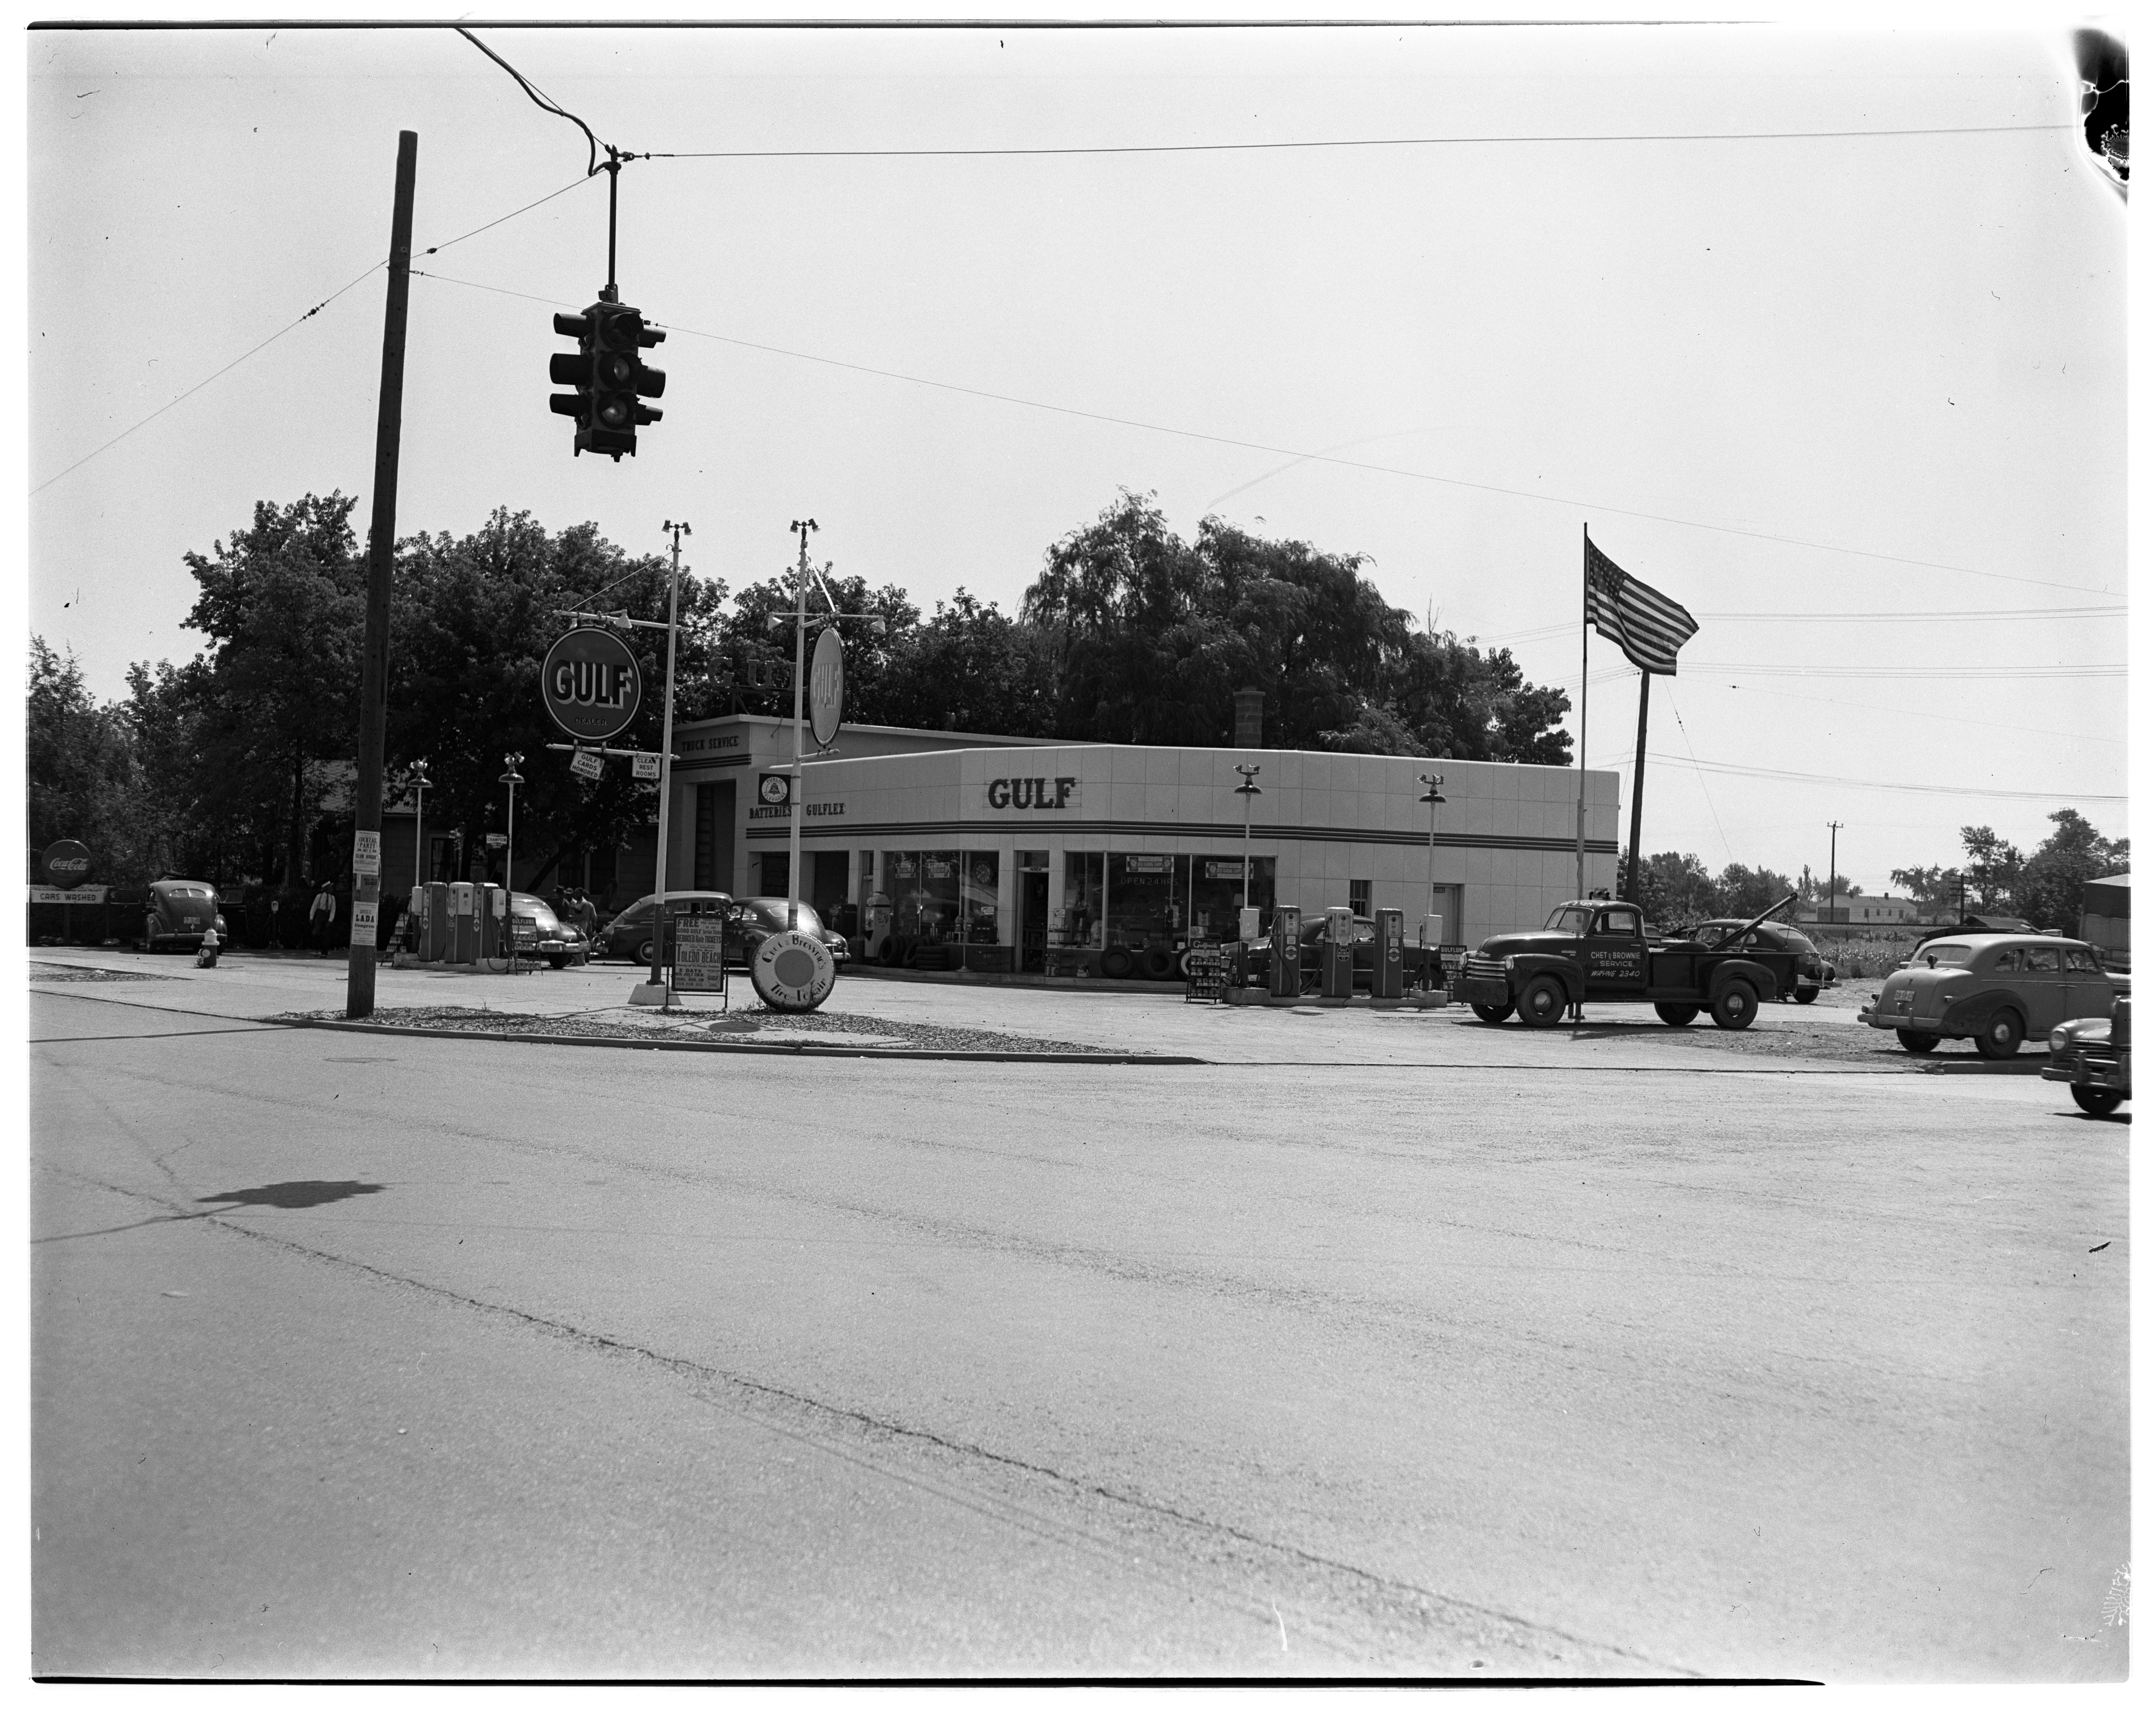 Gulf Gas Station & Service Center, August 1950 image